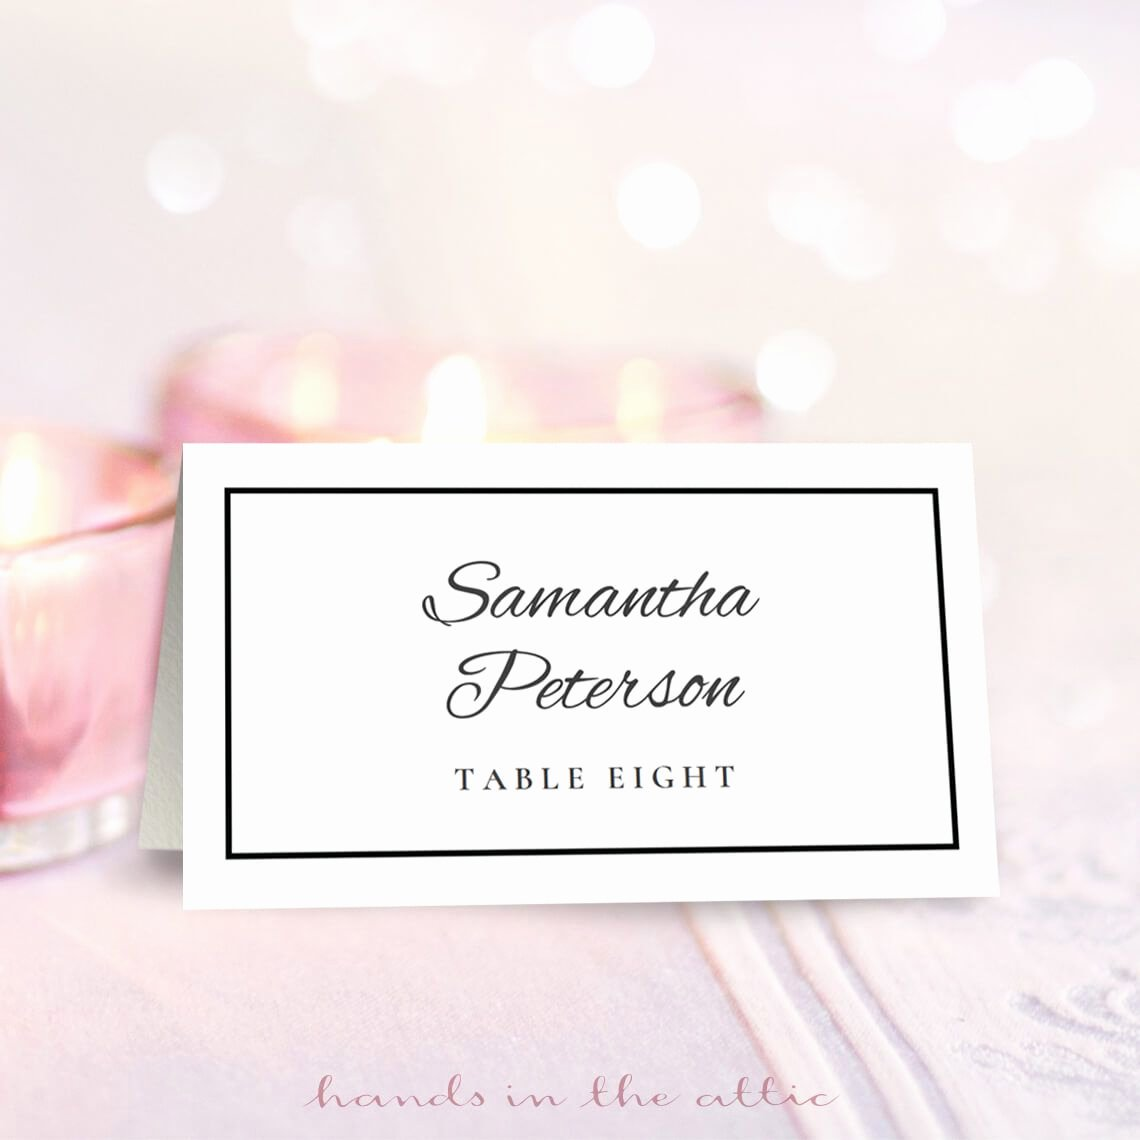 Free Wedding Place Cards Templates Beautiful 8 Free Wedding Place Card Templates